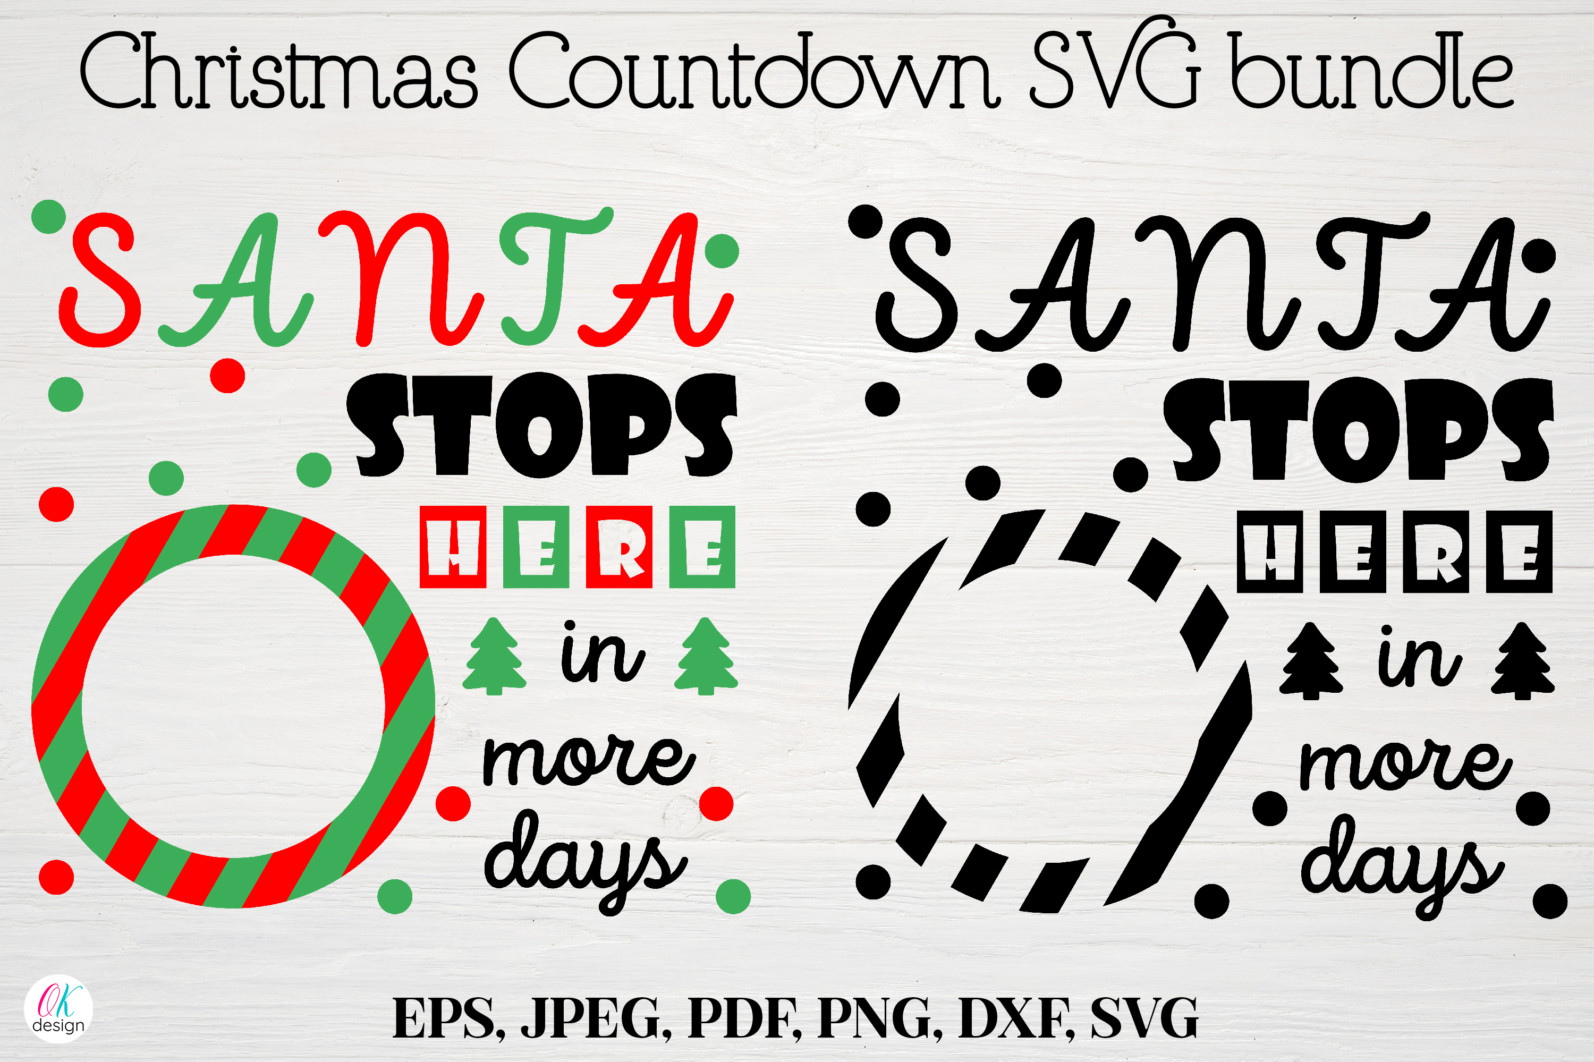 Christmas bundle Vol. 1. Christmas stickers. Christmas SVG bundle. - 6 Christmas svg Christmas countdown svg Christmas count down Christmas sign svg days until Christmas svg scaled -